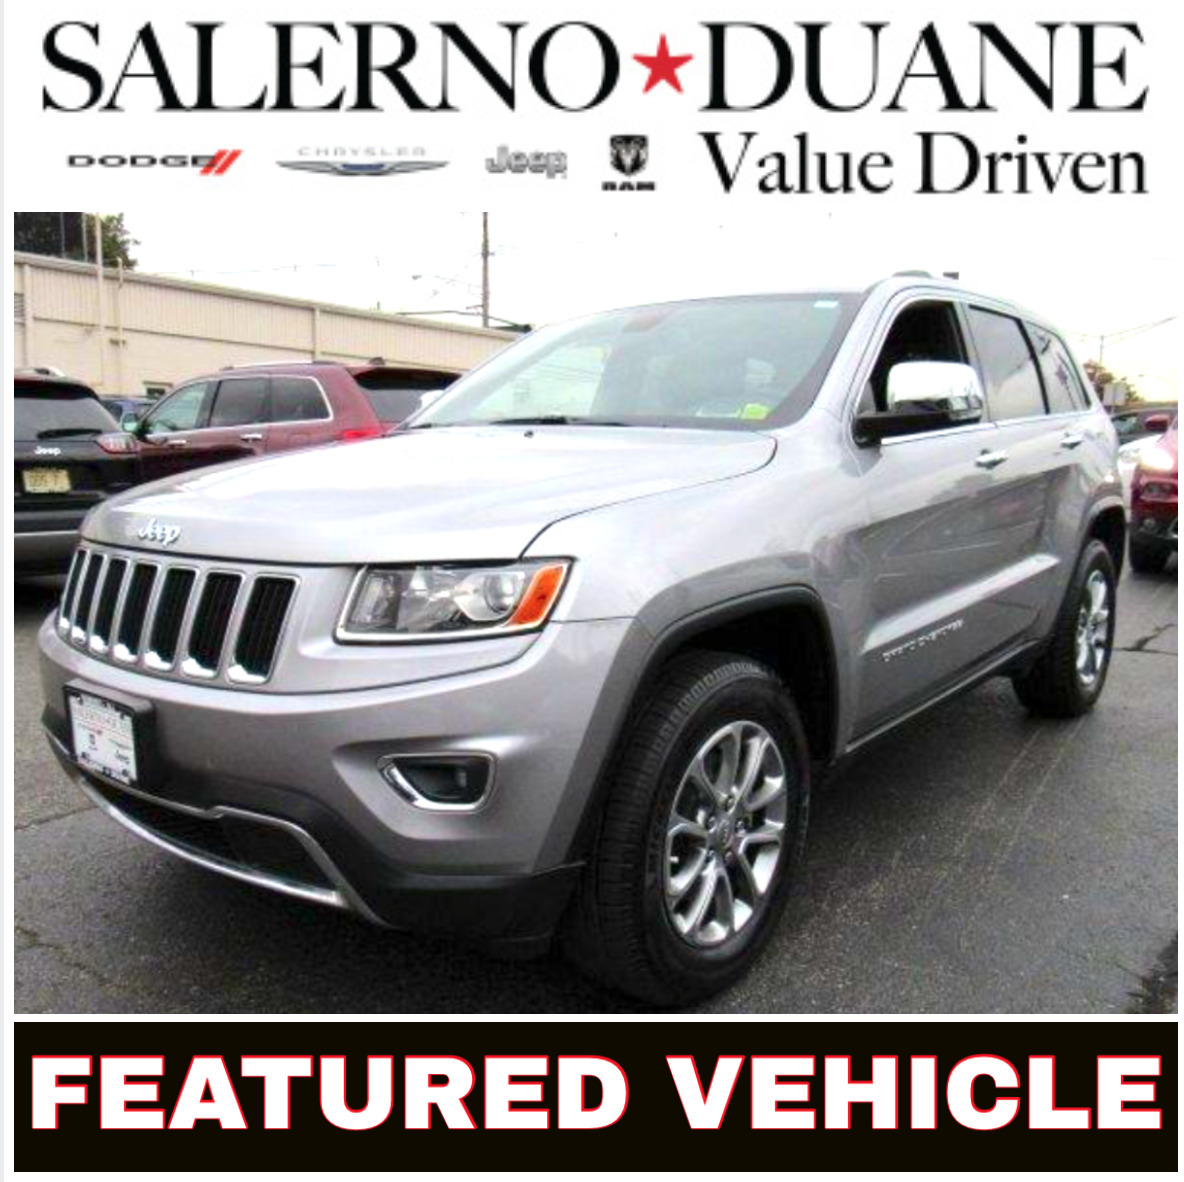 certified 2015 jeep grand cherokee 4wd limited is salerno duane featured pre owned vehicle tapinto. Black Bedroom Furniture Sets. Home Design Ideas